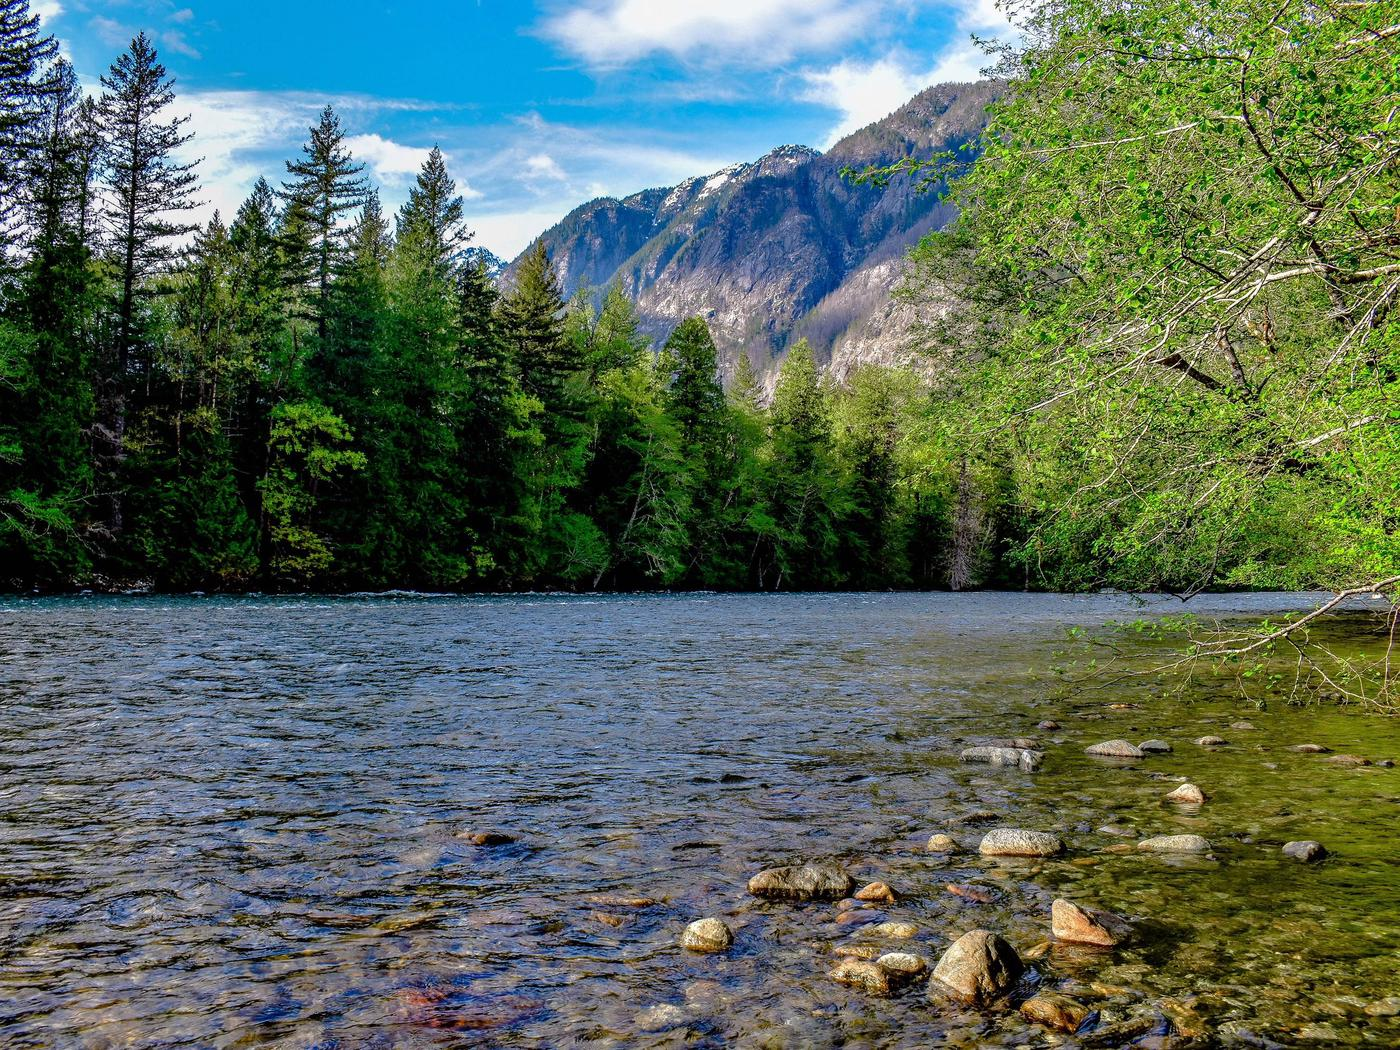 Placid river bordered by lush forests with tall mountains in the distanceView of the Skagit River from the Newhalem Campground